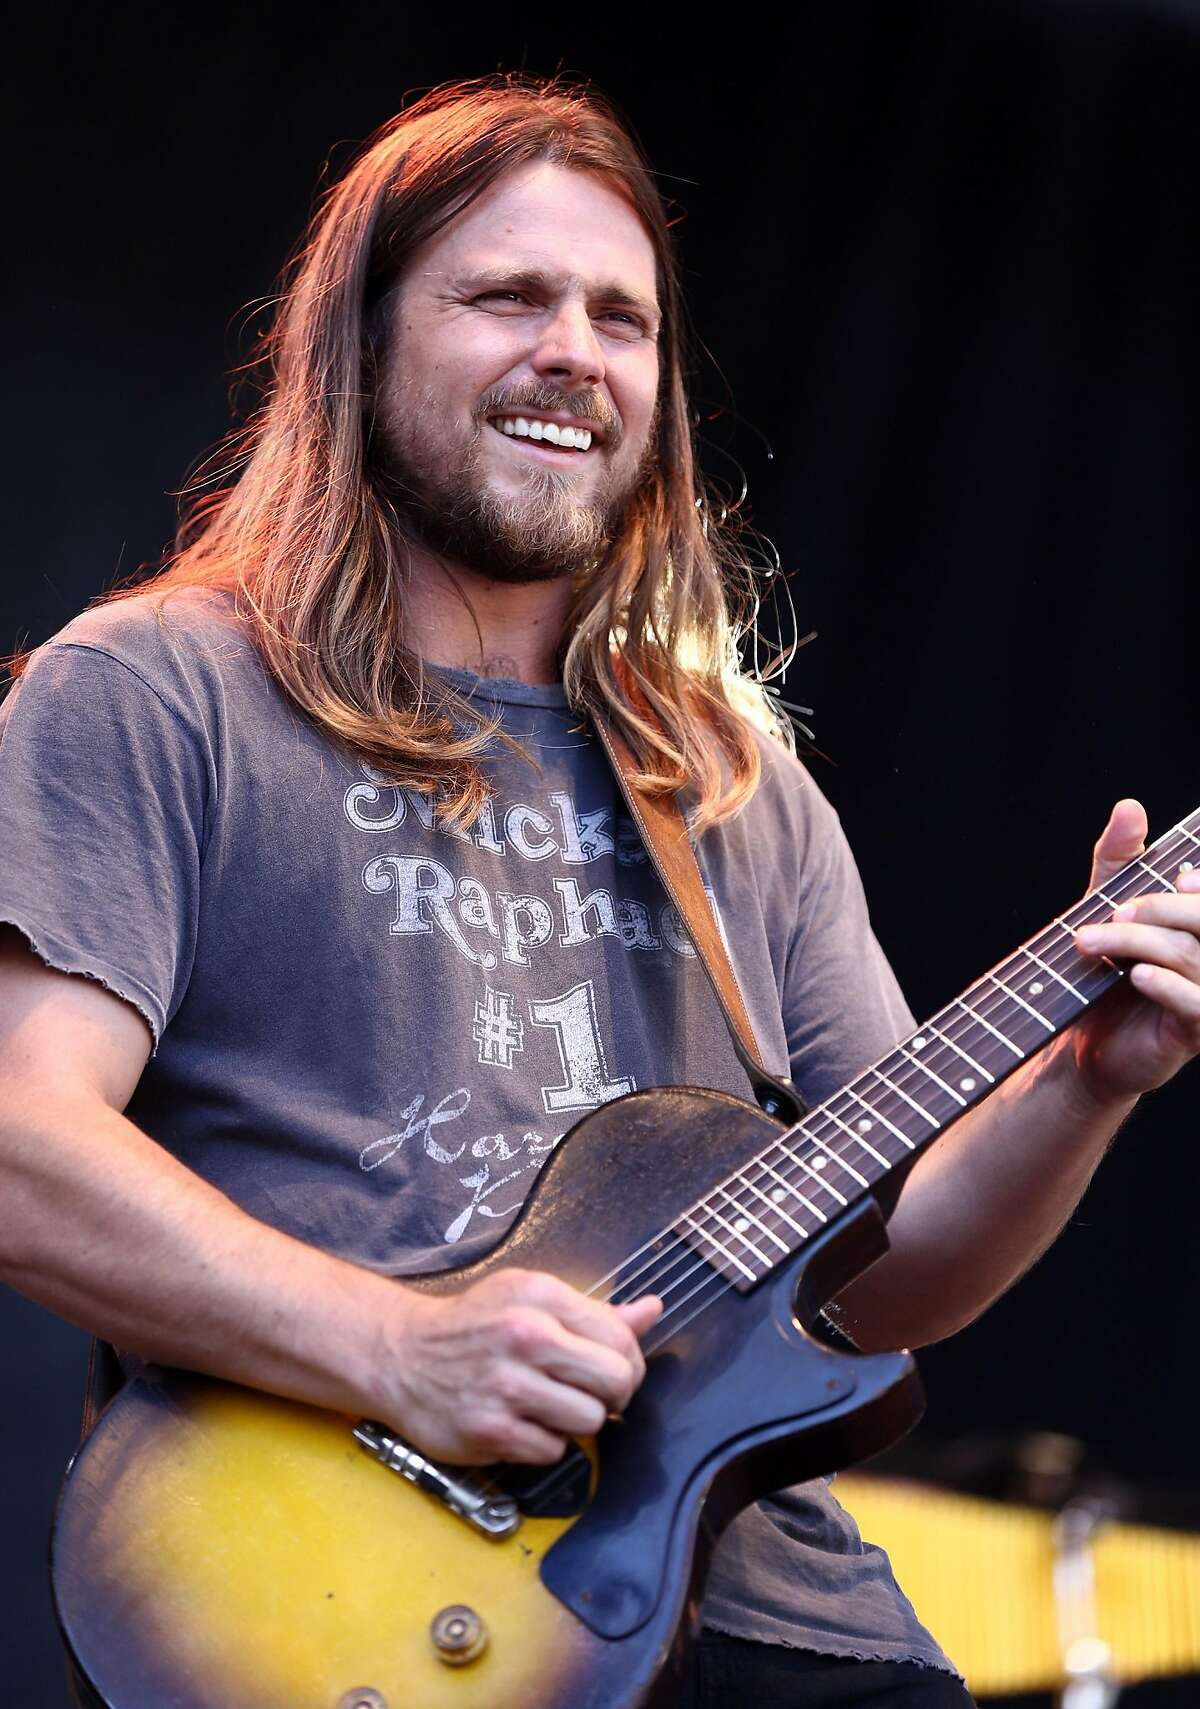 PASADENA, CA - JUNE 25: Musician Lukas Nelson of musical group Lukas Nelson & Promise of the Real performs on the Sycamore stage during Arroyo Seco Weekend at the Brookside Golf Course at on June 25, 2017 in Pasadena, California. (Photo by Rich Fury/Getty Images for Arroyo Seco Weekend)